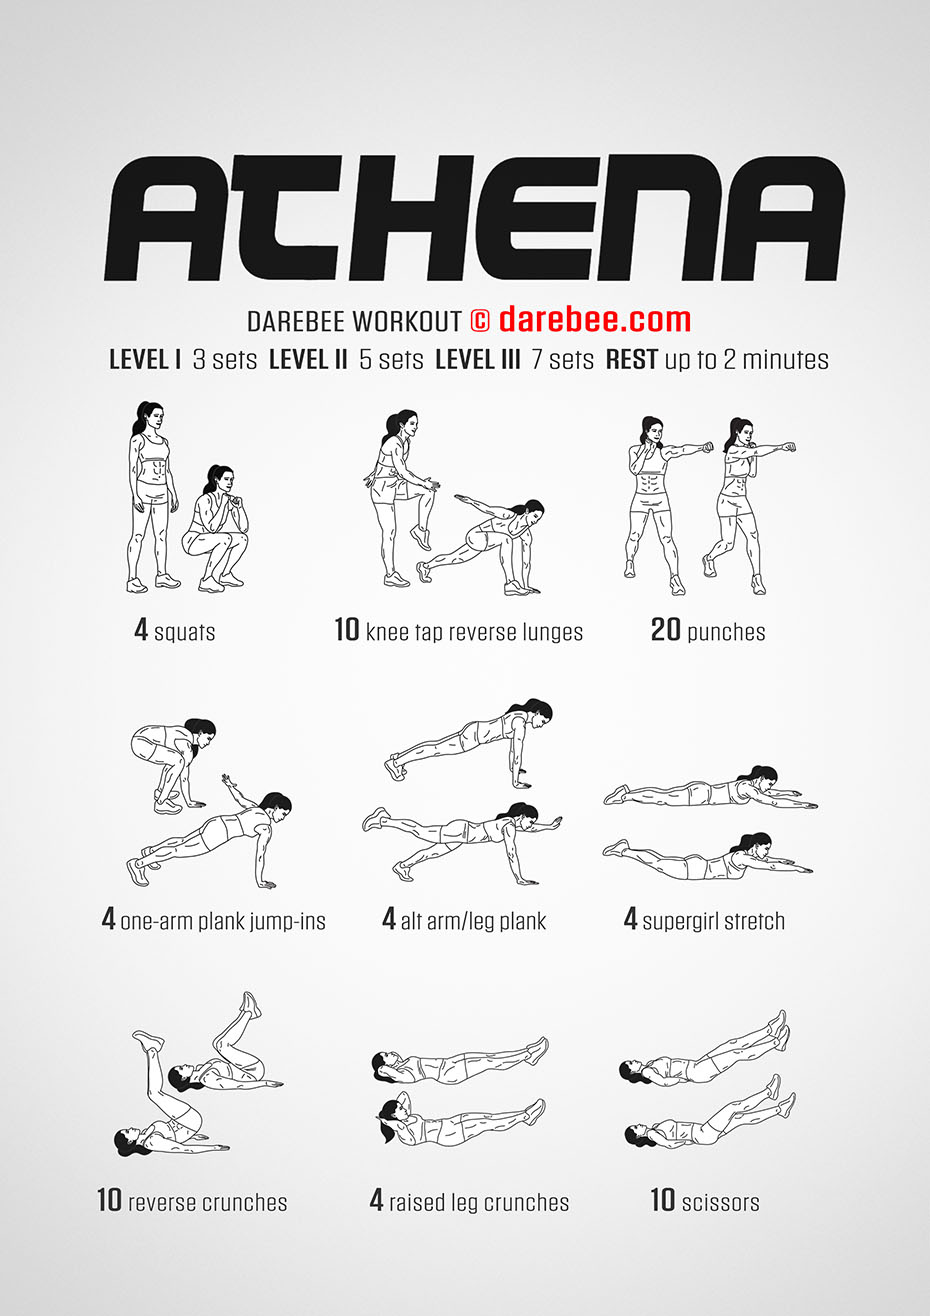 fitness exercise workout with asthma Darebee